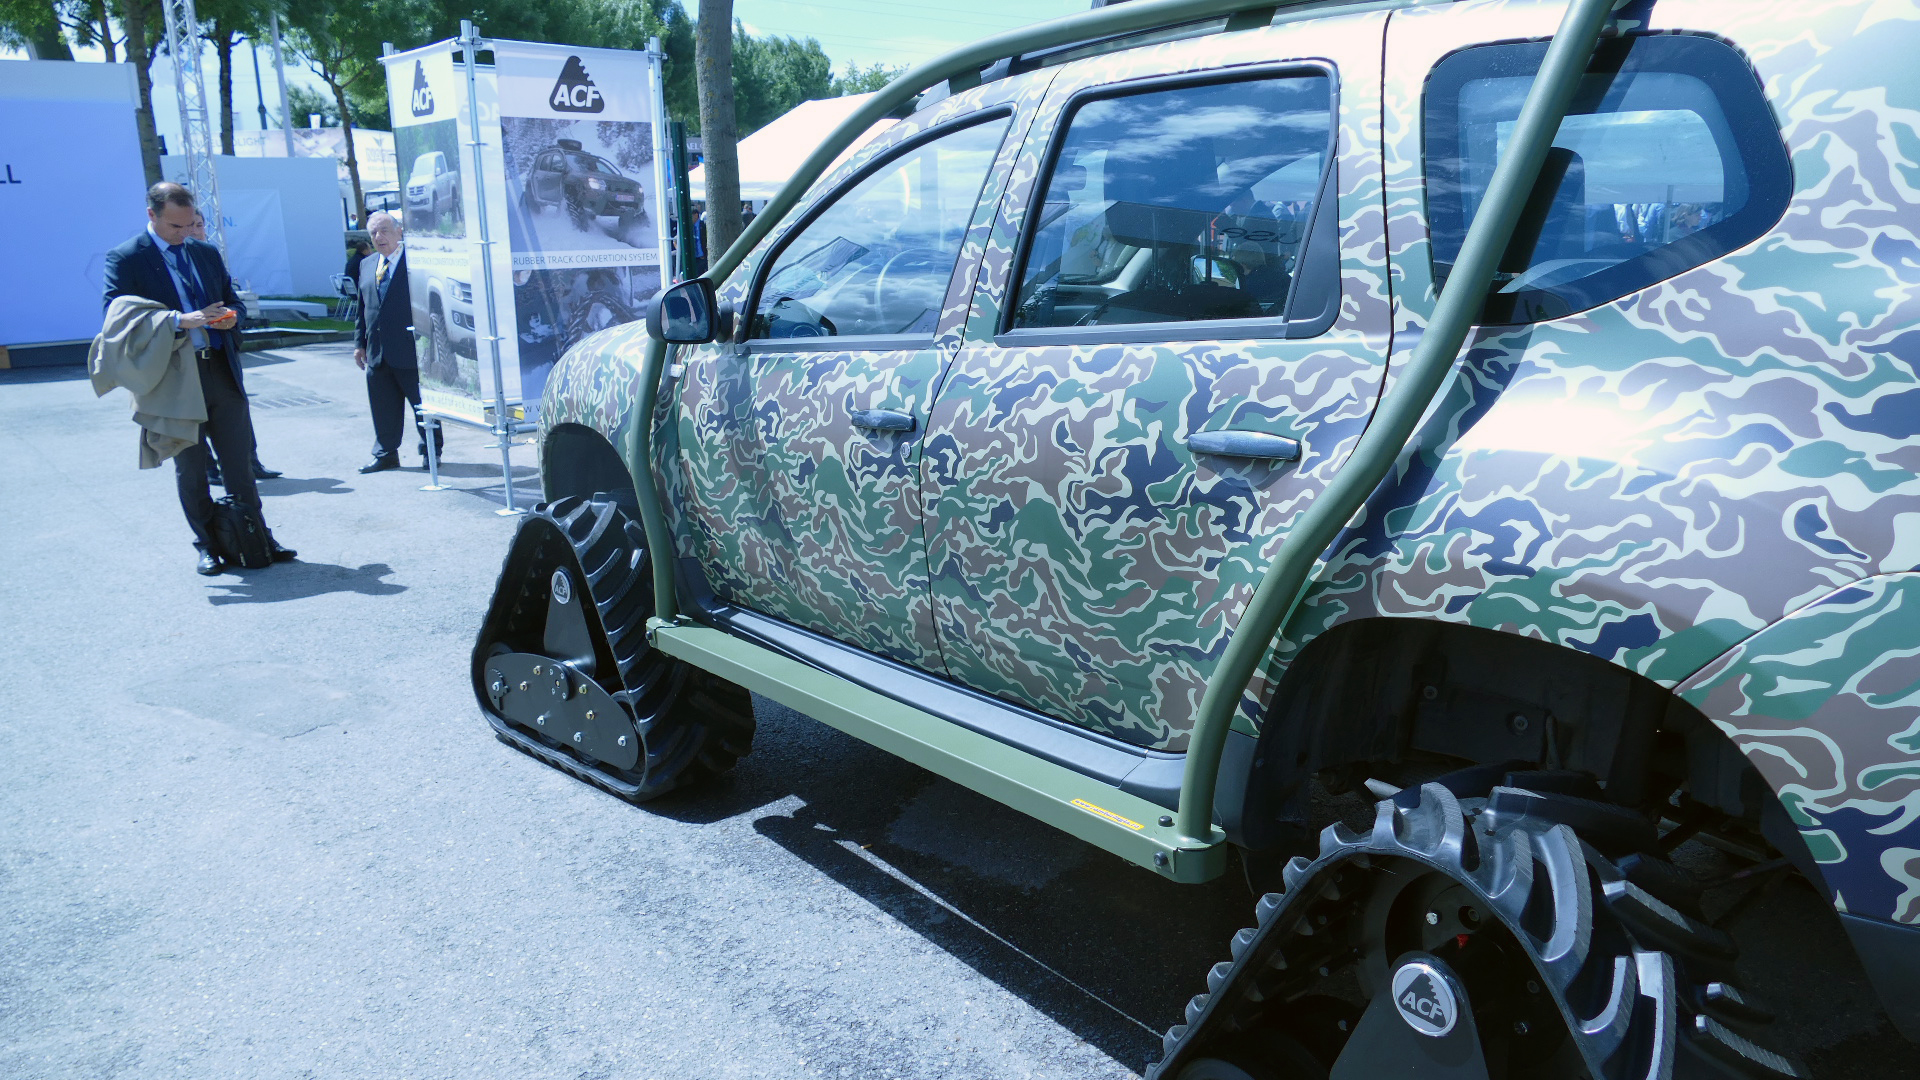 roumanie dacia duster pick up tracked acf eurosatory 2016 le monde de la maquette. Black Bedroom Furniture Sets. Home Design Ideas